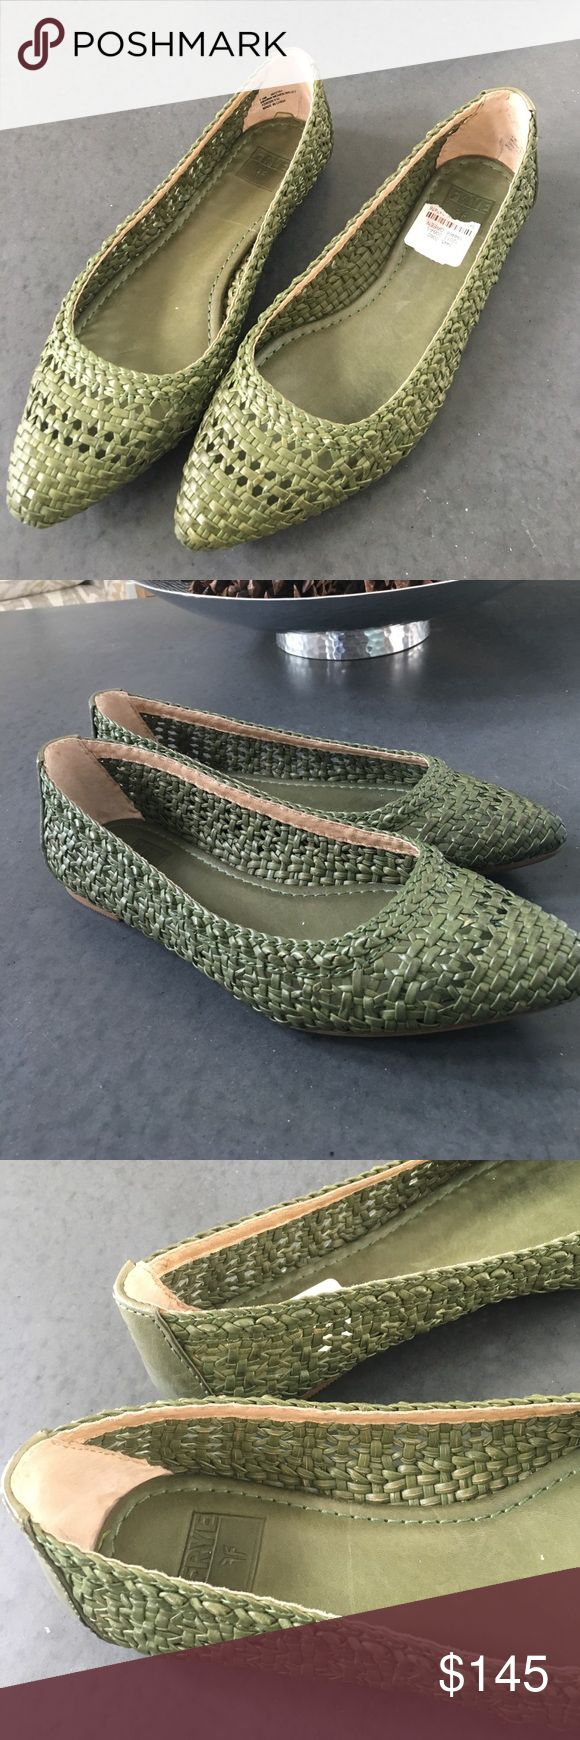 "Frye Green Ballet Flat Woven leather ballet shoe by Frye. 1/4"" flat heel. Frye logo stamped at solid counter. Braided trim at collar. Almond toe. Leather insole. Rubber outsole. Frye Shoes Flats & Loafers"